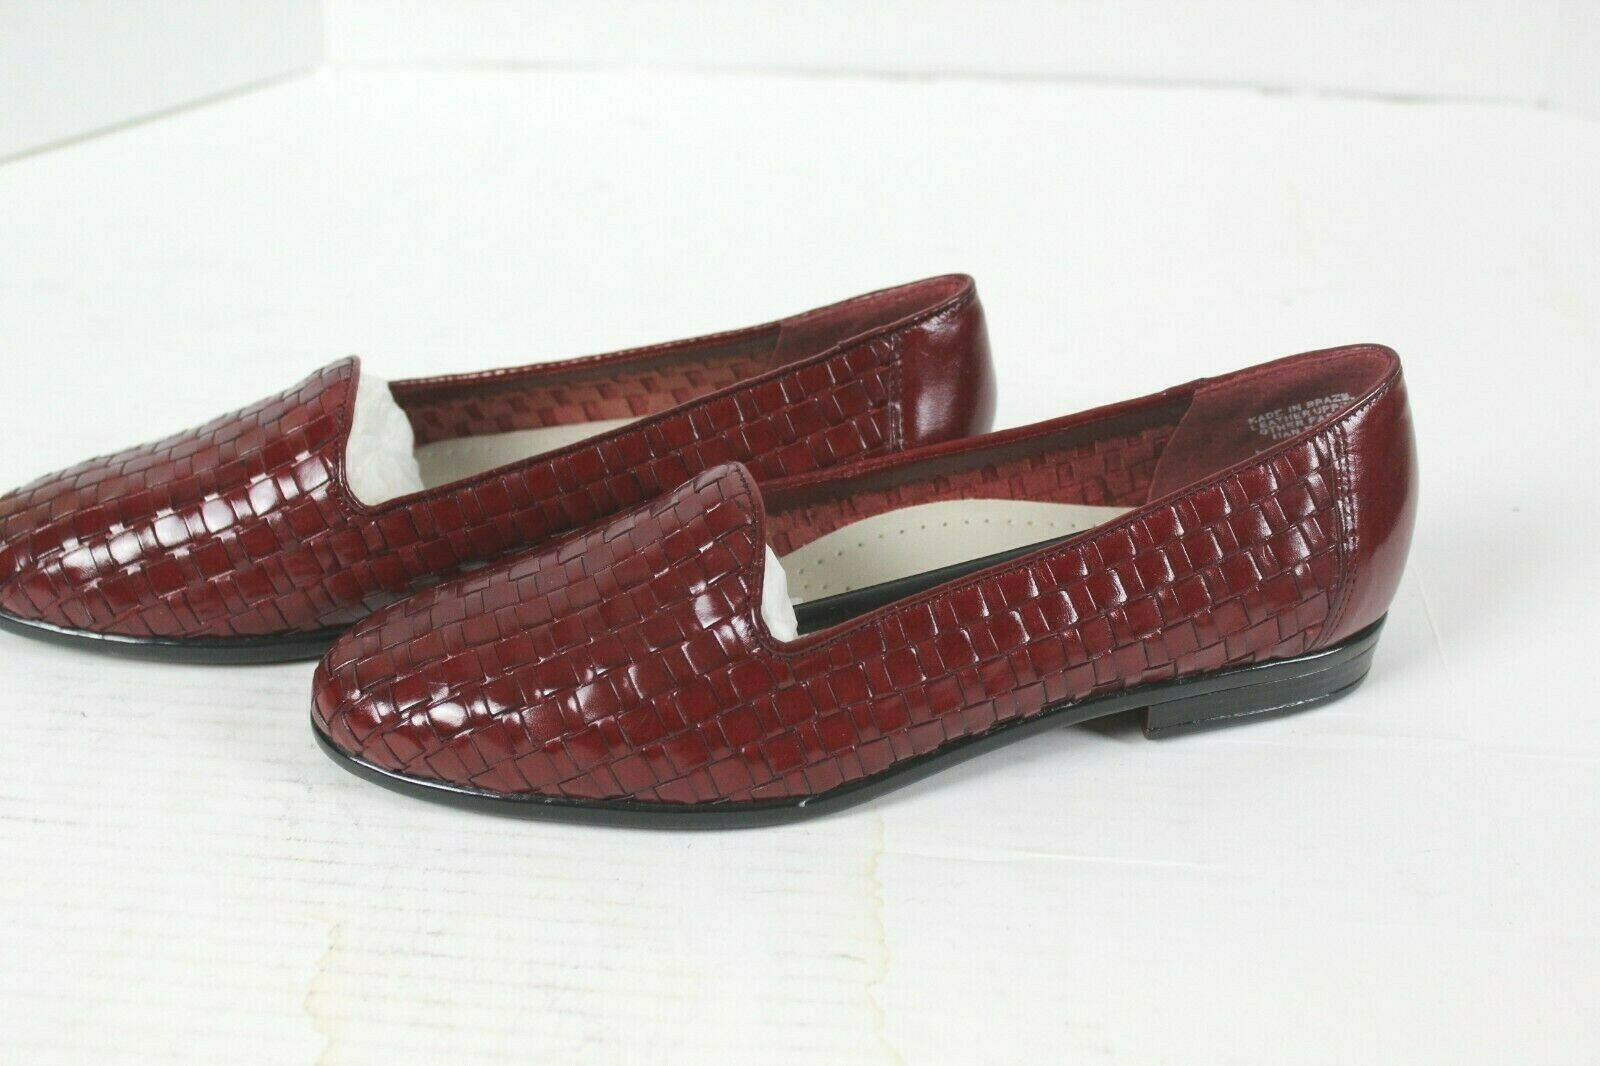 Tredters Liz Red Leather Women's shoes Basket Weave Slip On Flats Size 7.5M NEW